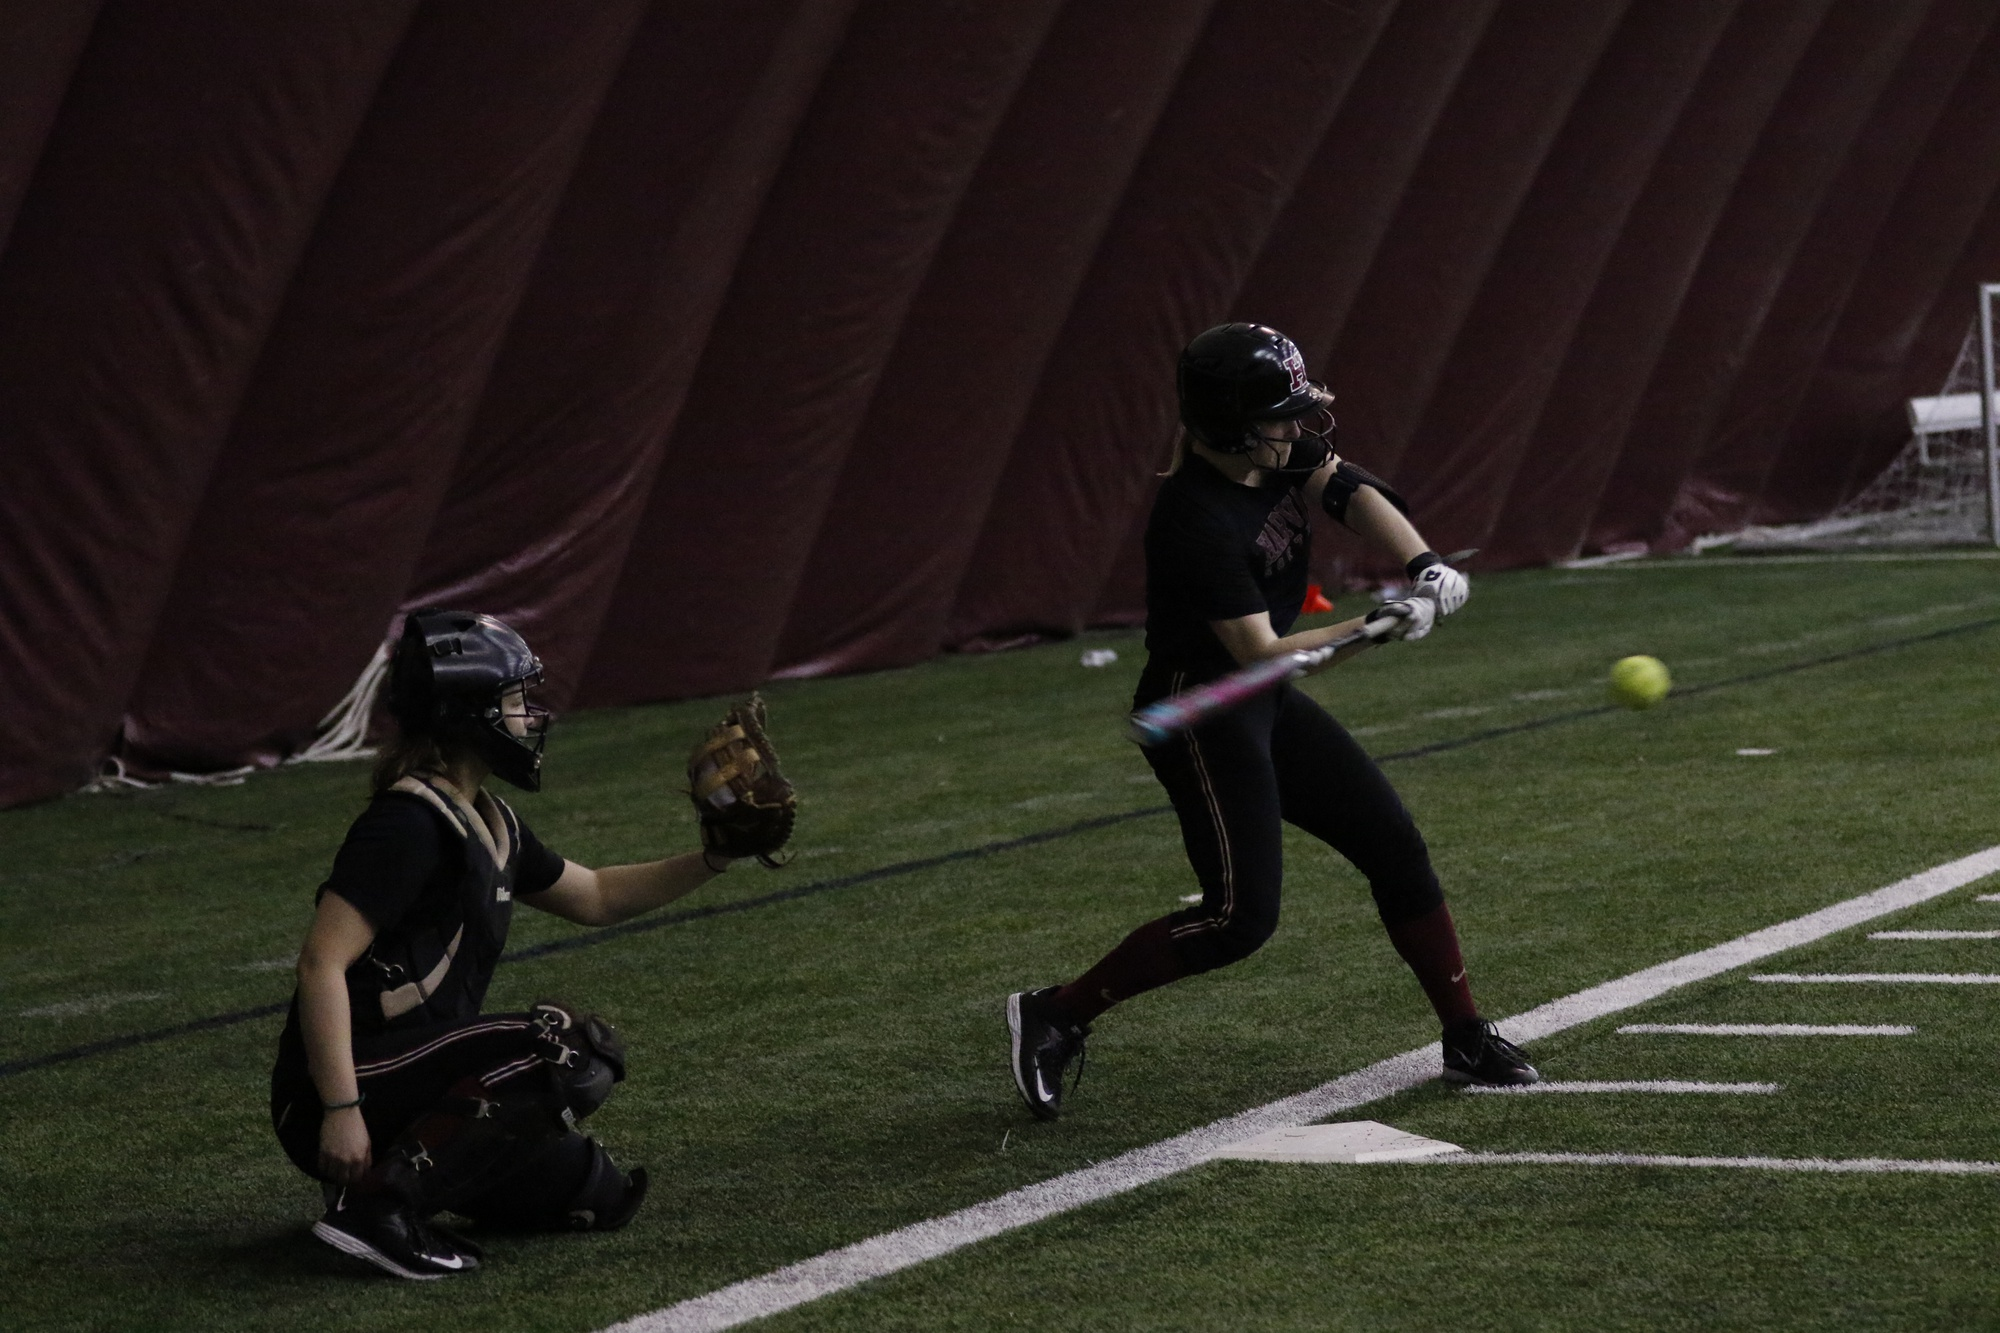 For many weeks, the softball team has practiced in Harvard stadium beneath an inflatable dome.